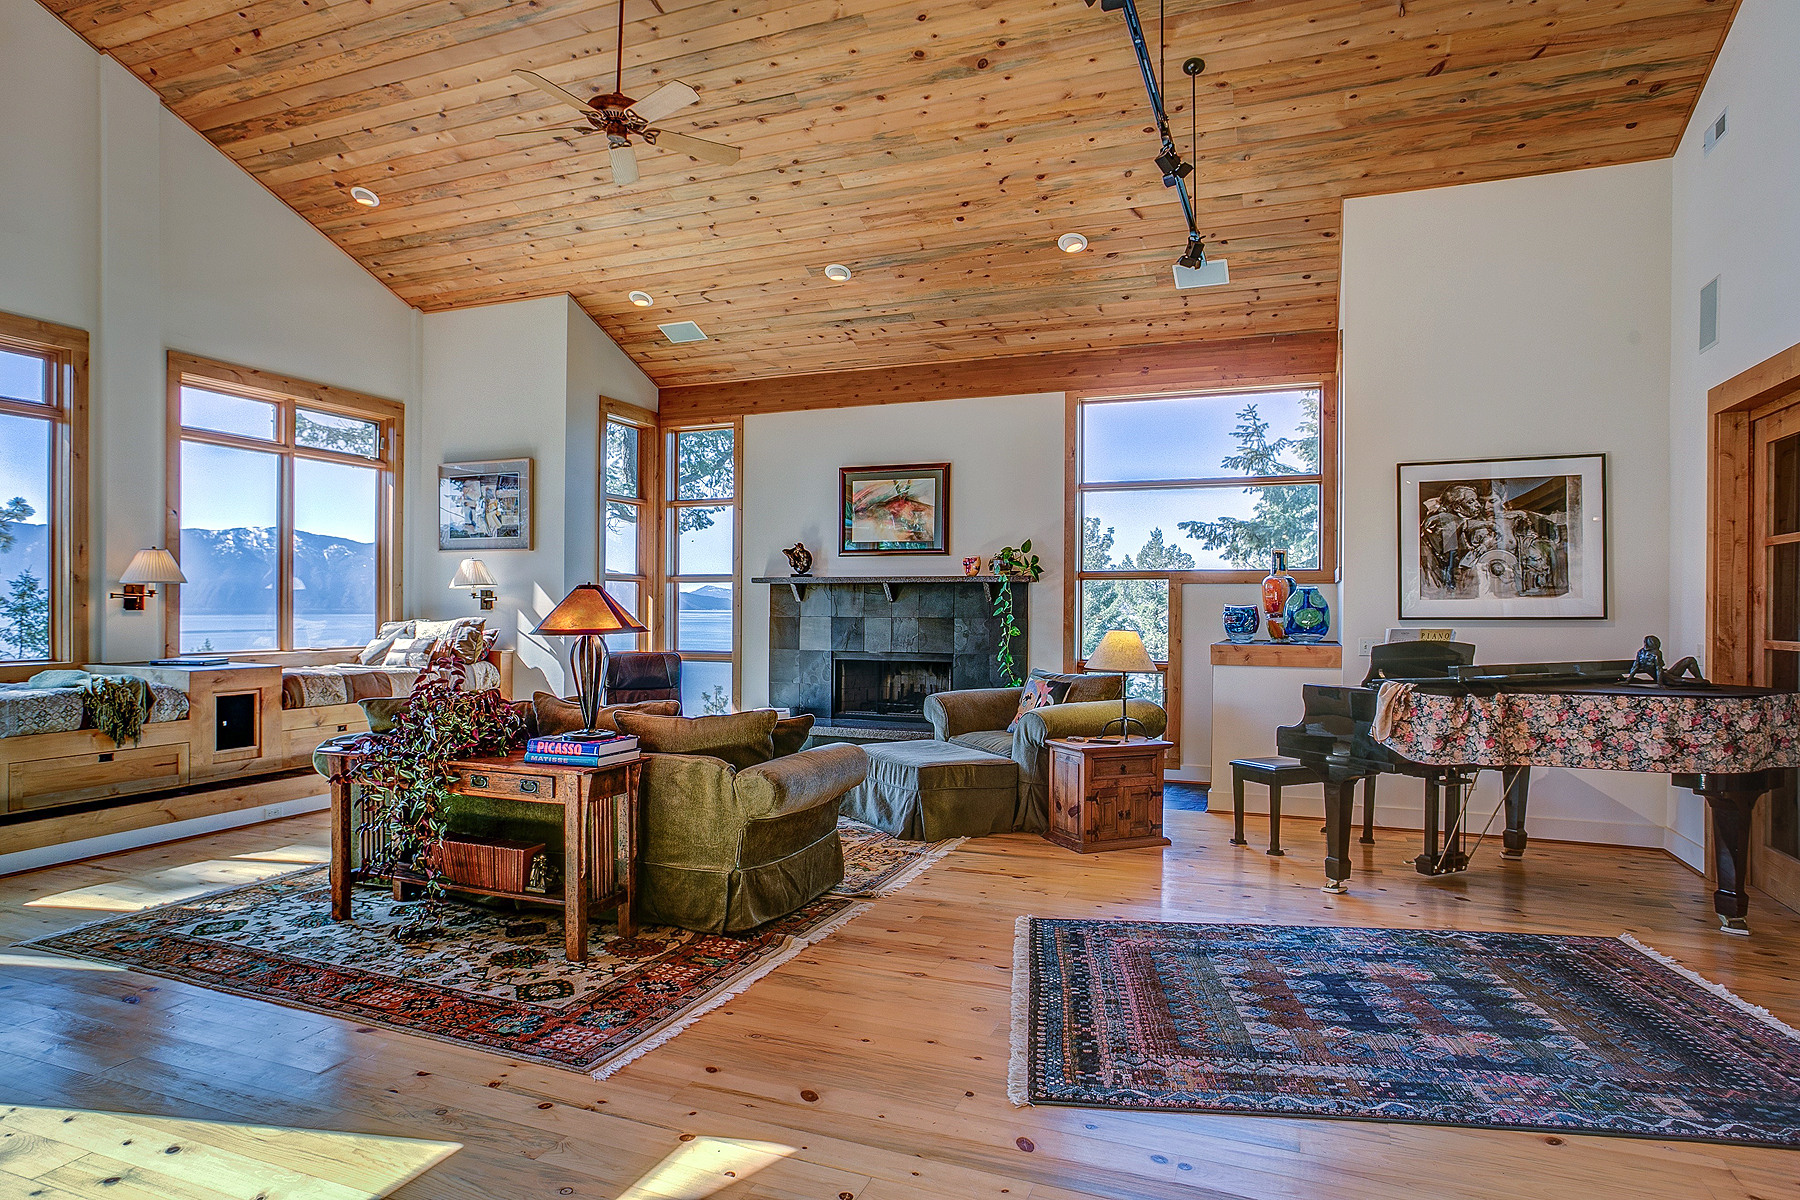 Single Family Home for Sale at A vacation every day! Poised at the tip of the Hope Peninsula 178/180 Deer Haven Hope, Idaho, 83836 United States